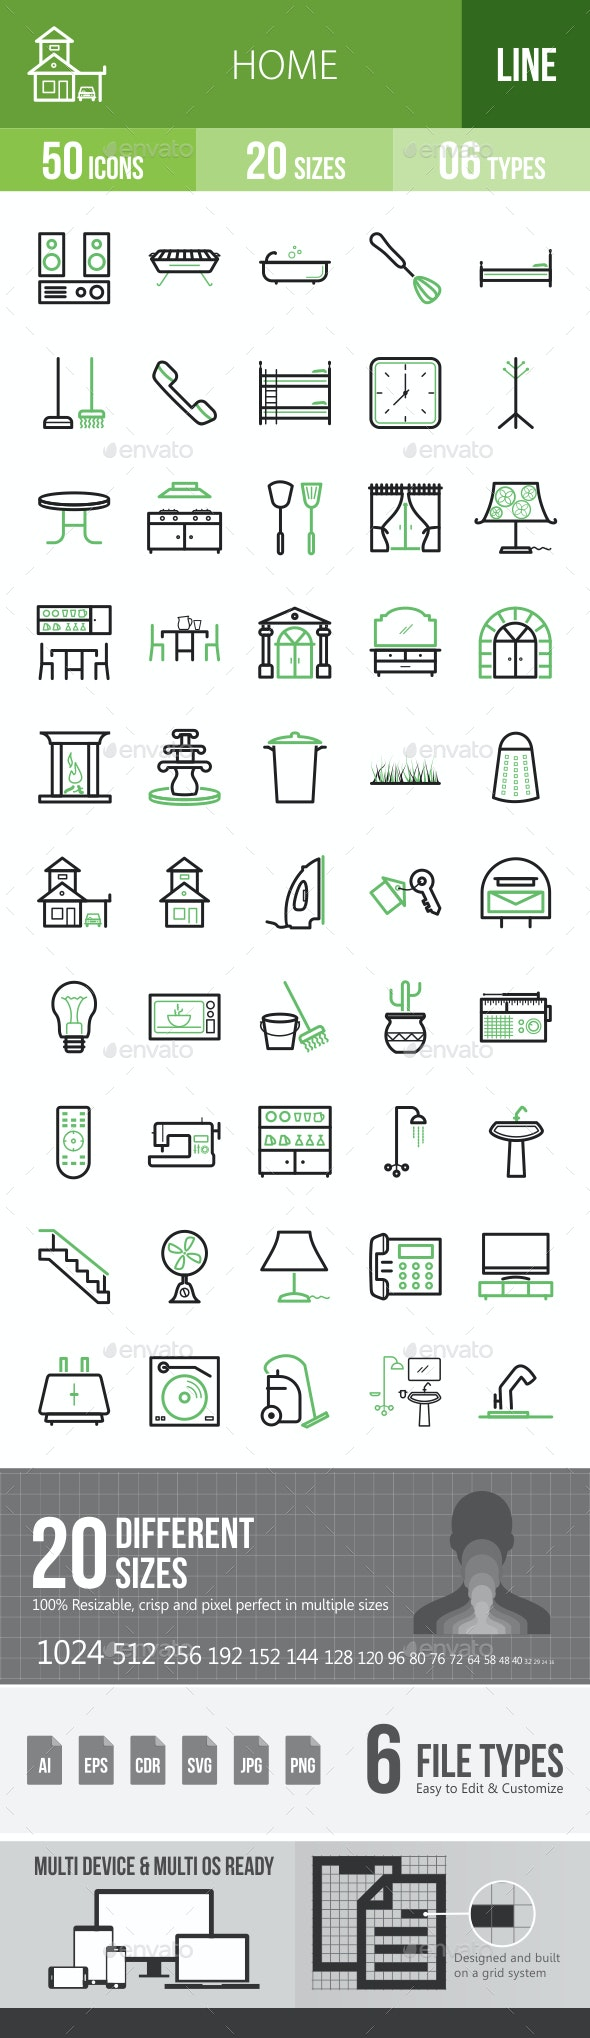 Home Line Green & Black Icons - Icons